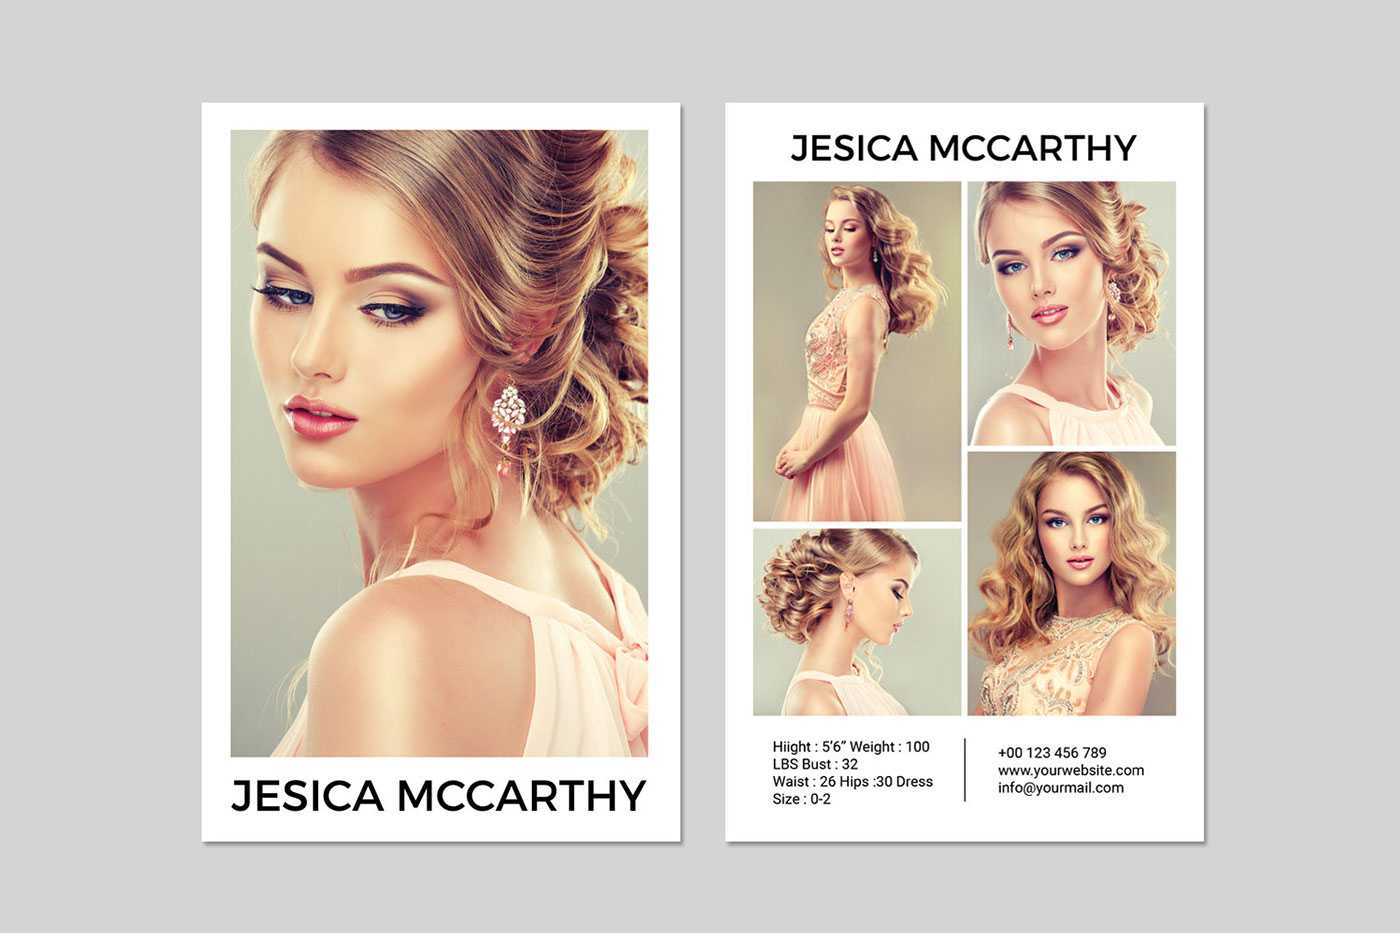 031 Model Comp Card Template Outstanding Ideas Psd Free For Comp Card Template Download